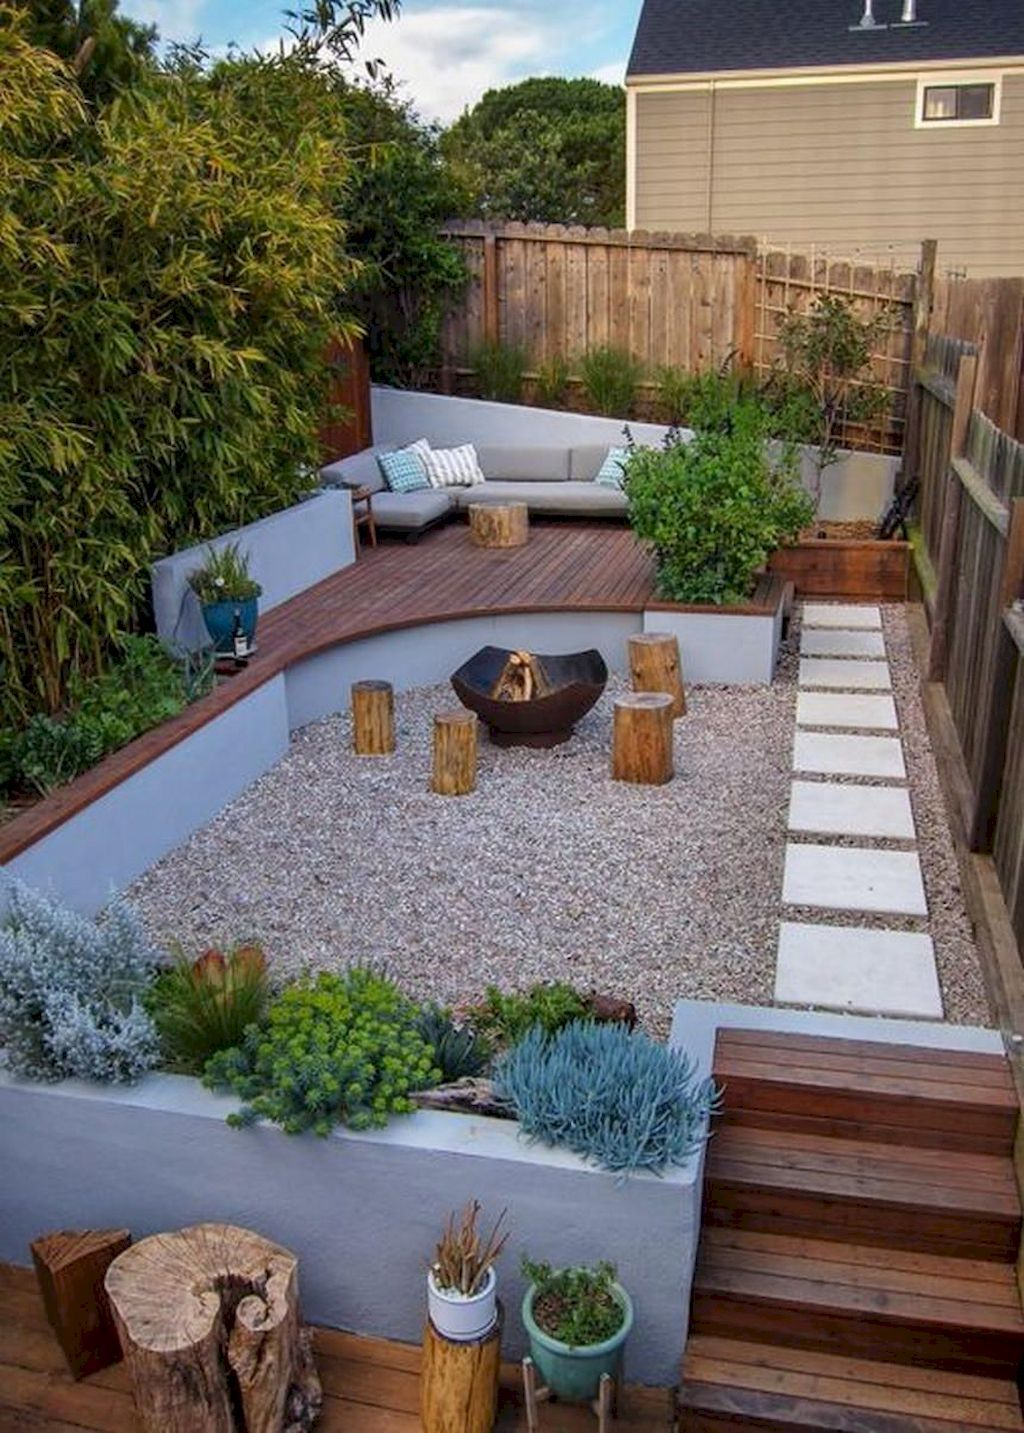 75 Diy Small Backyard Garden Ideas On A Budget Small Backyard